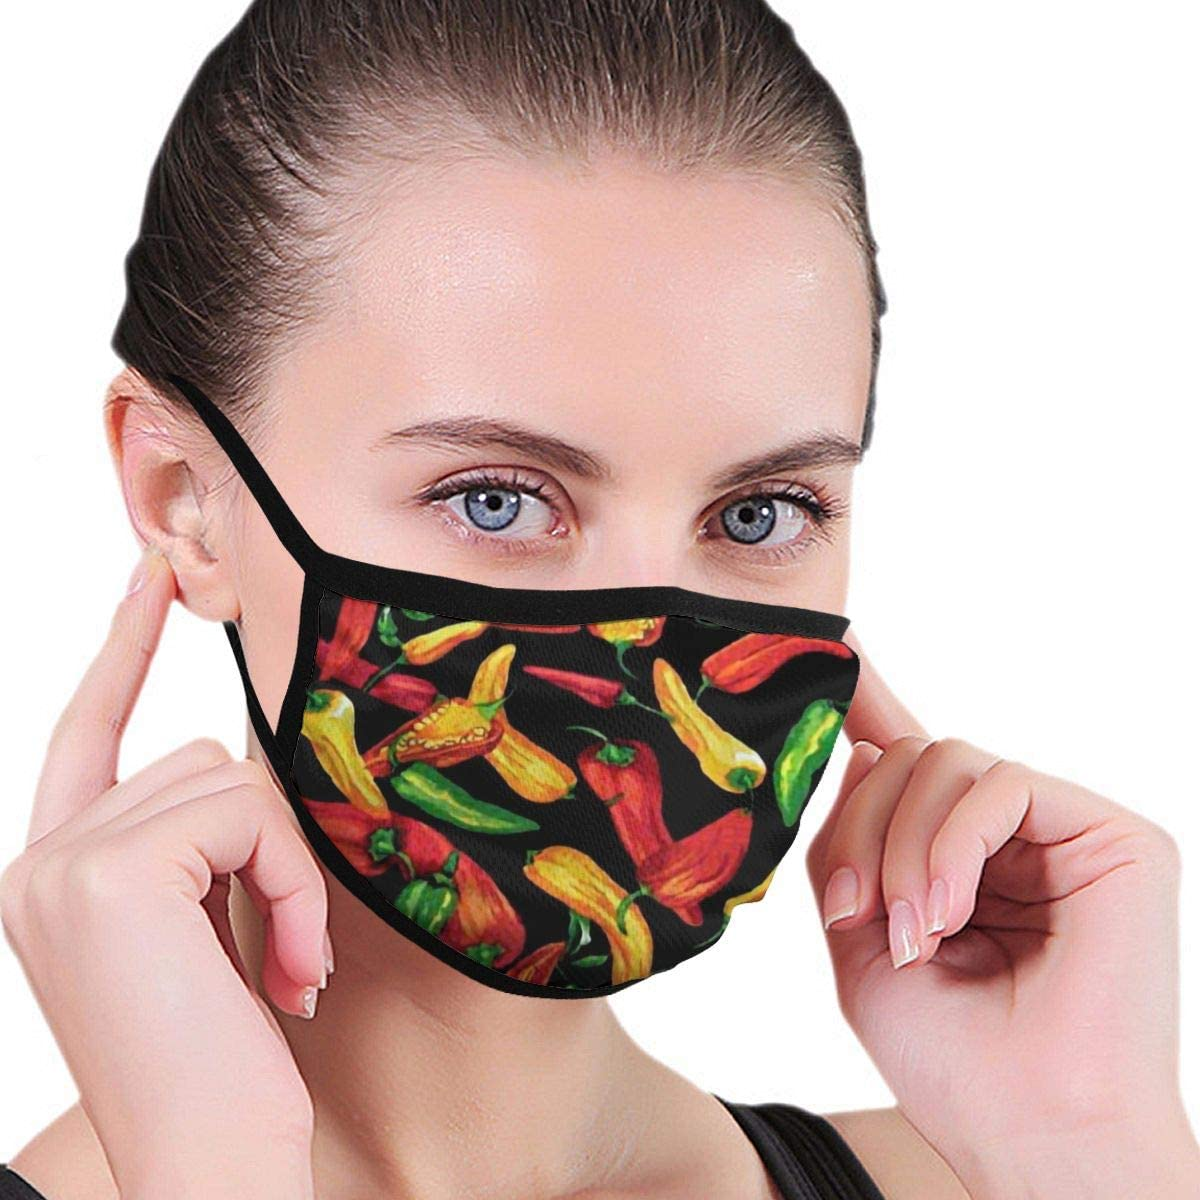 2 Packs Dust Mouth Protection Red Chili Cot Pepper Green Unisex Ranking TOP10 Nippon regular agency